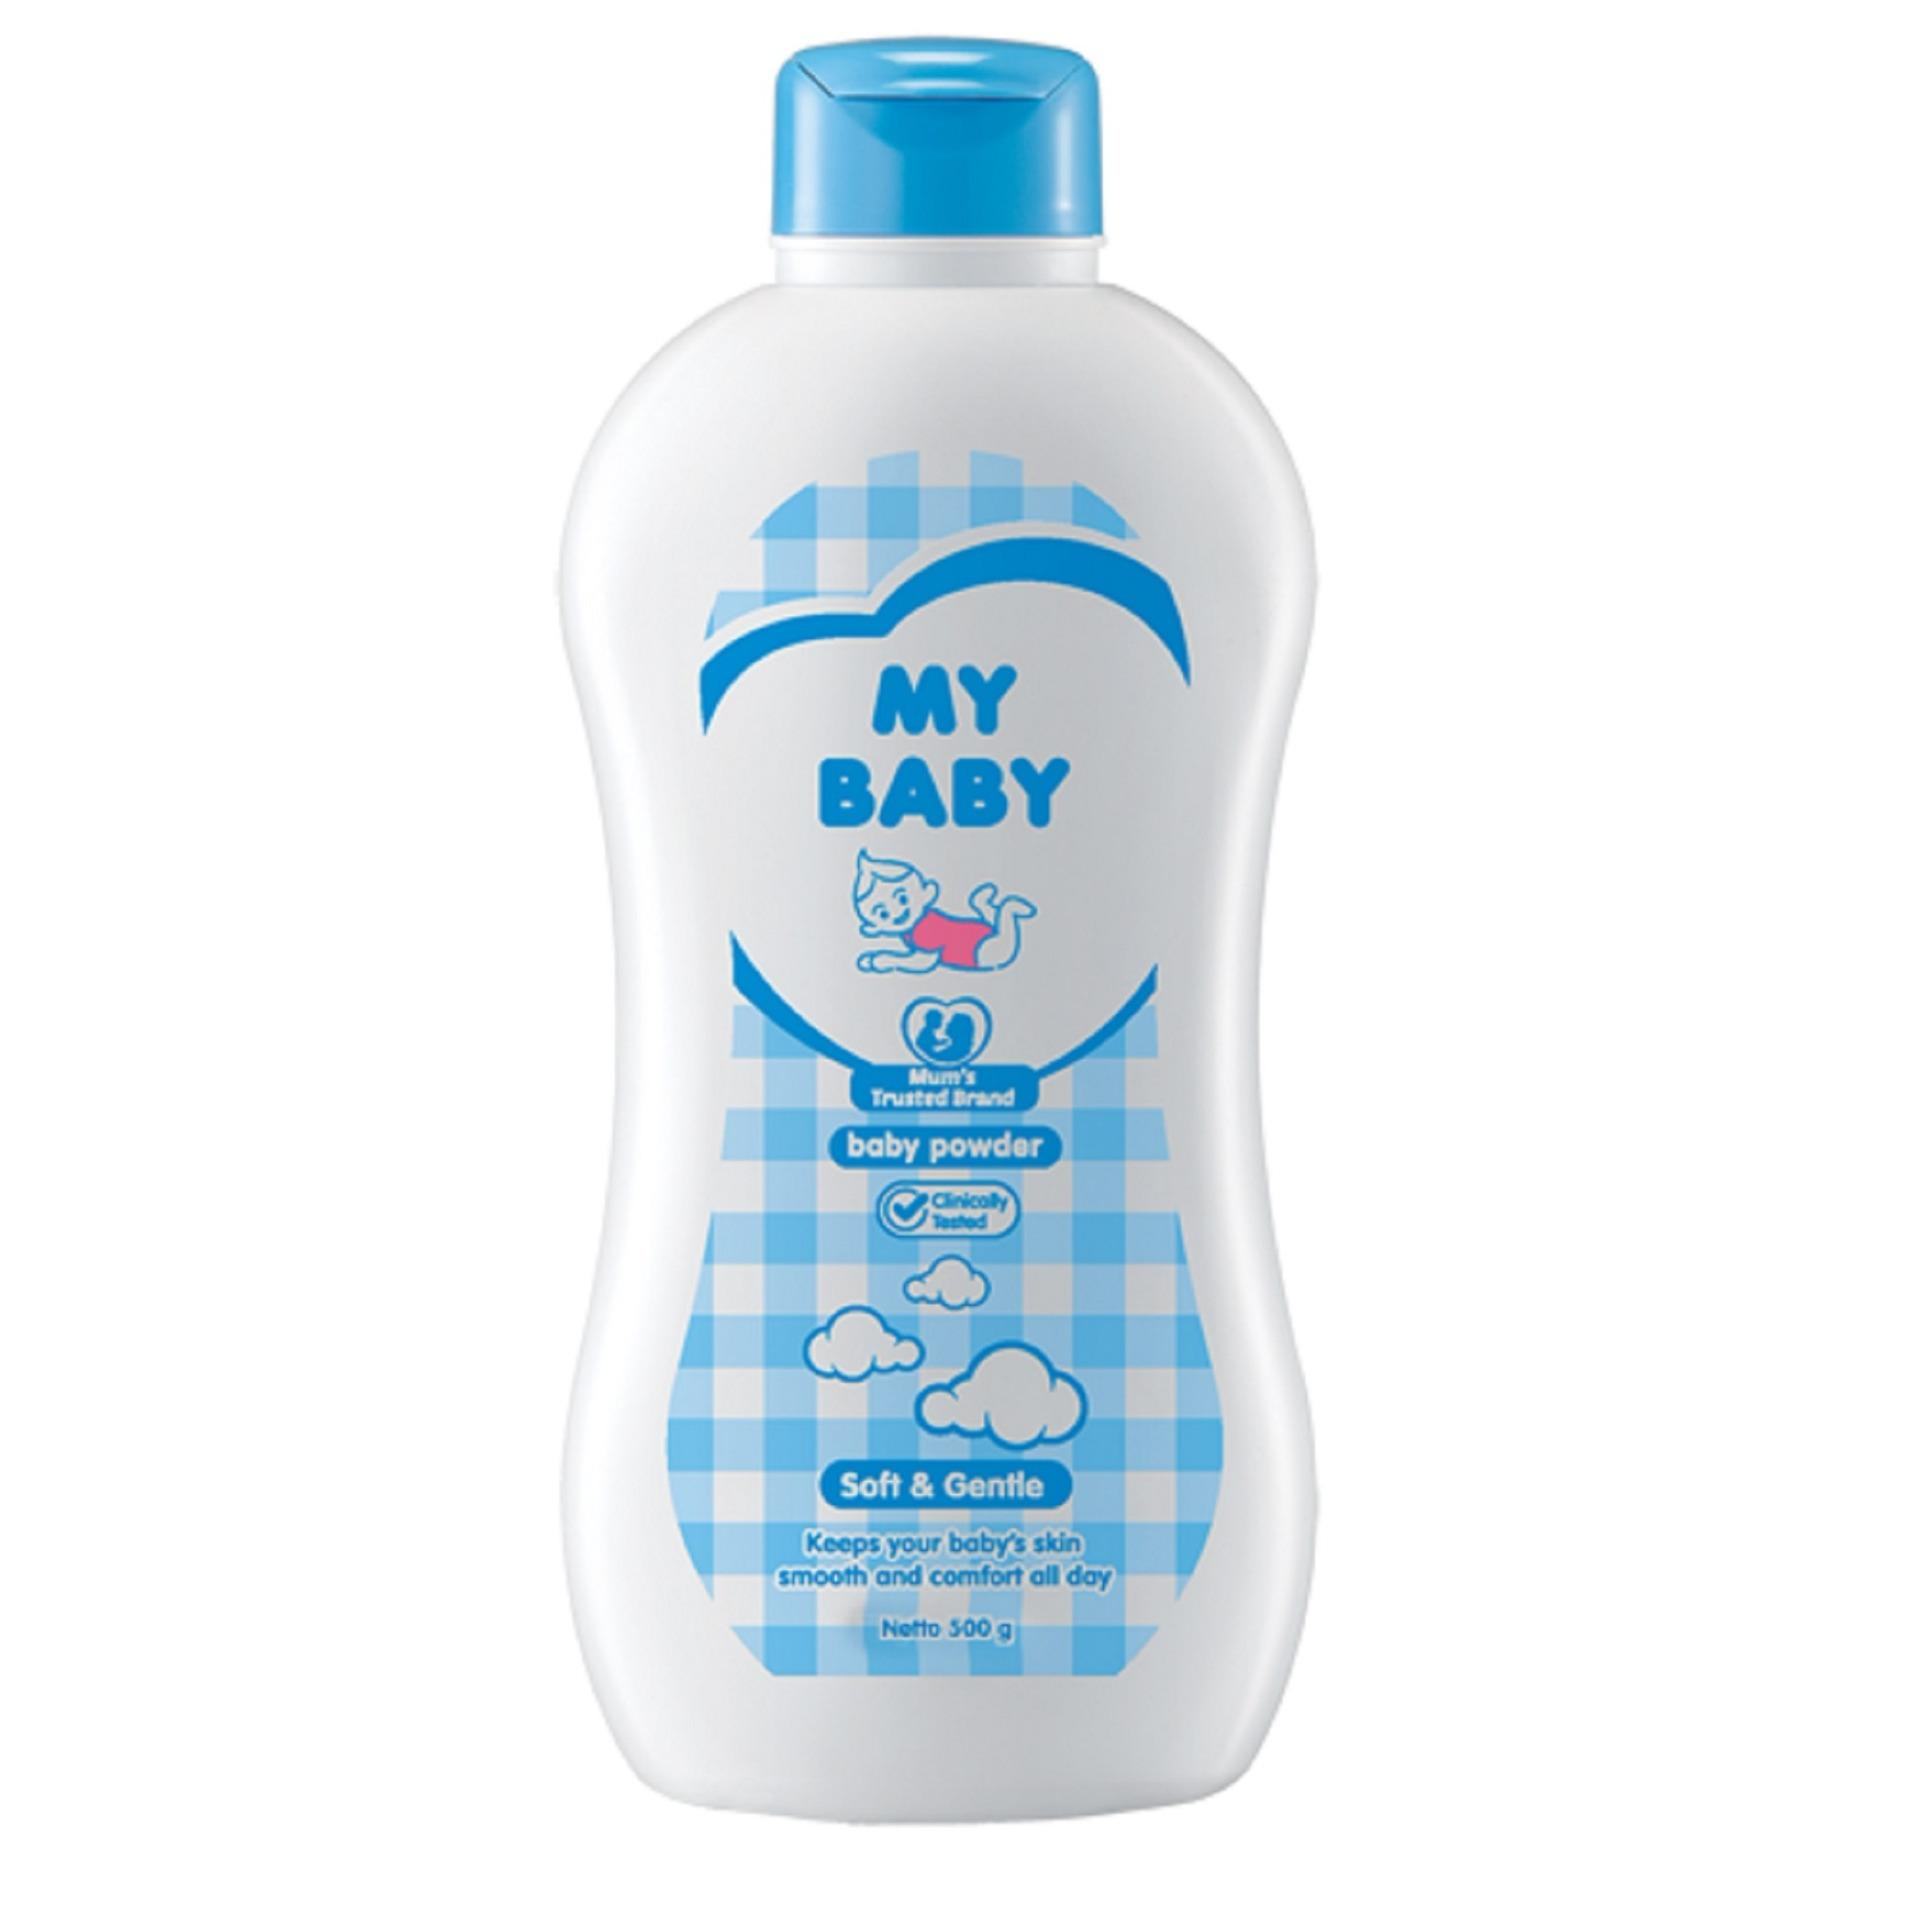 Cek Harga Baru My Baby Lotion Soft Gentle 100 Ml 2 Pcs Terkini Zwitsal Classic 200ml Powder 500